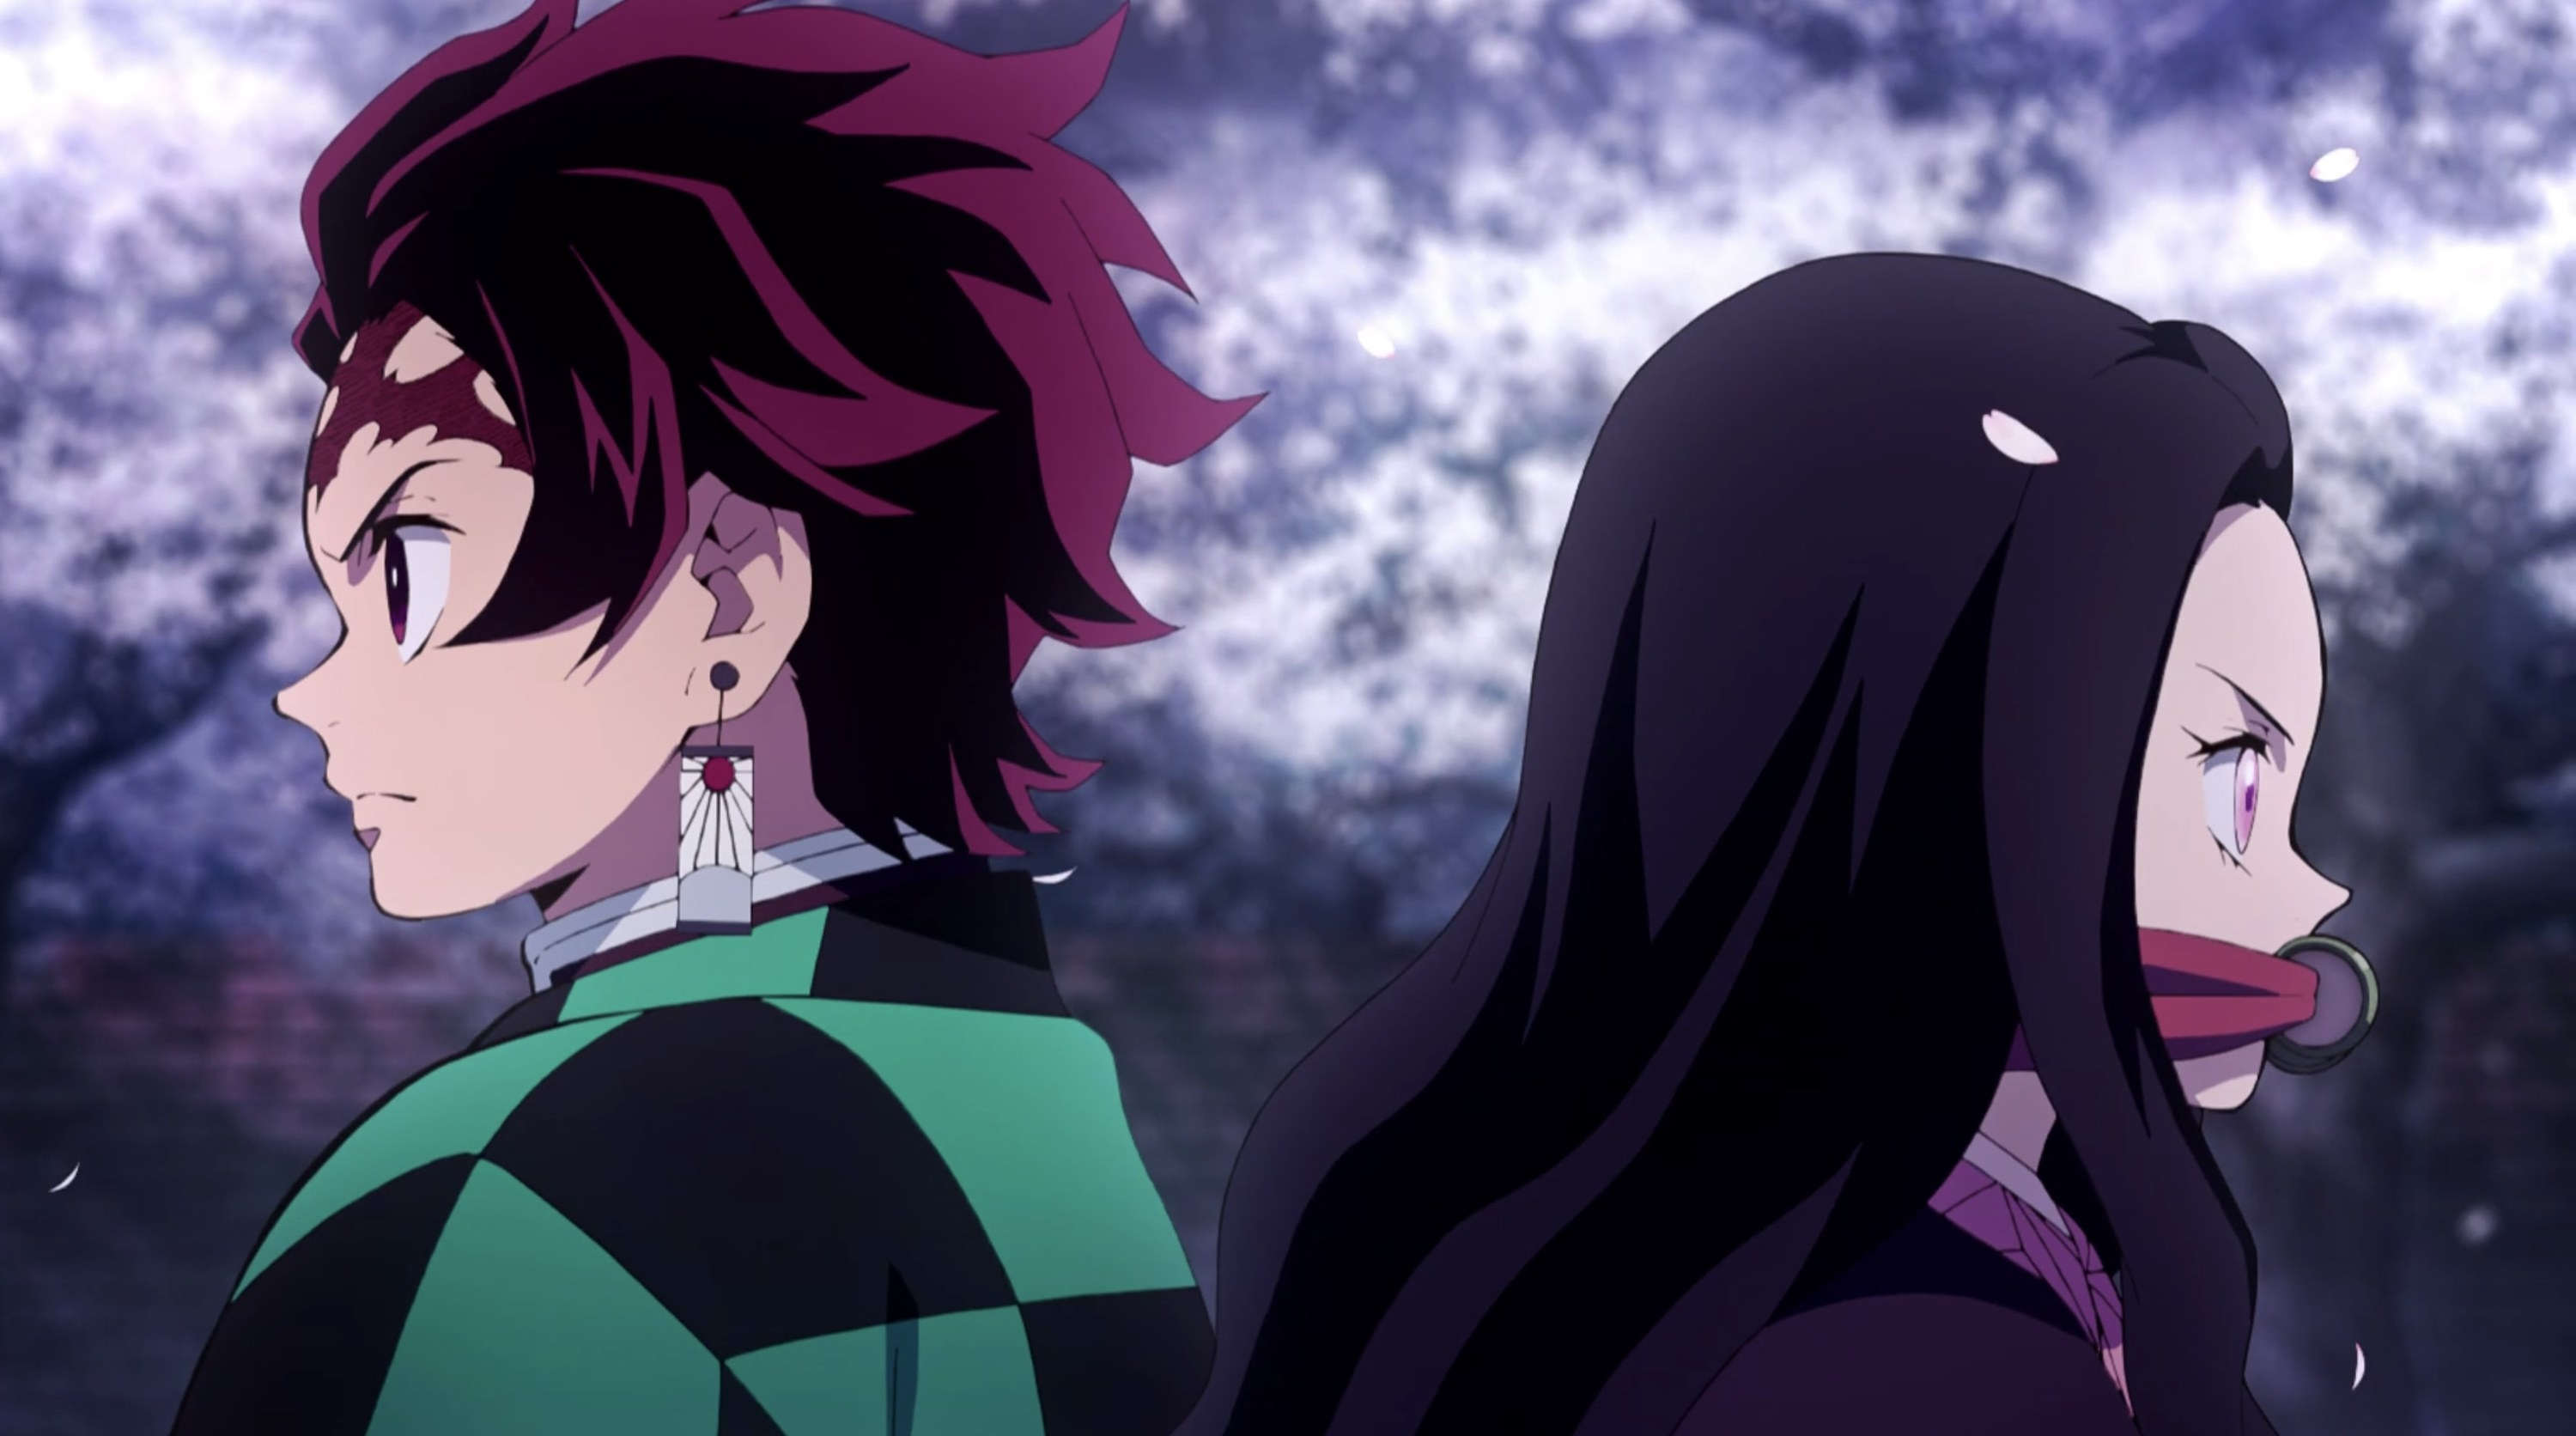 Tanjiro and Nezuko with their backs to each other, fiercely looking into the distance